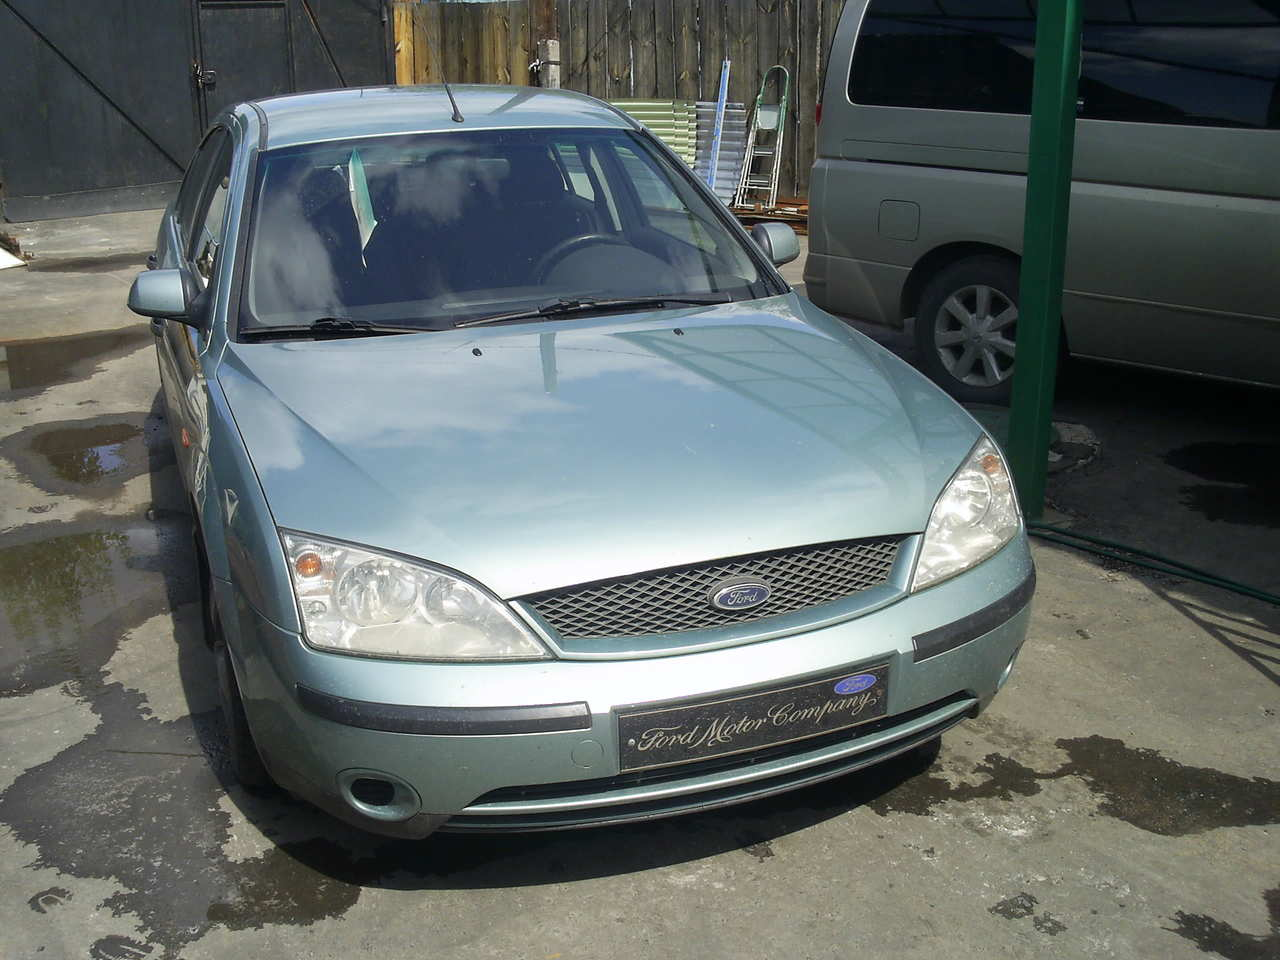 used 2001 ford mondeo photos 1800cc gasoline ff manual for sale. Black Bedroom Furniture Sets. Home Design Ideas